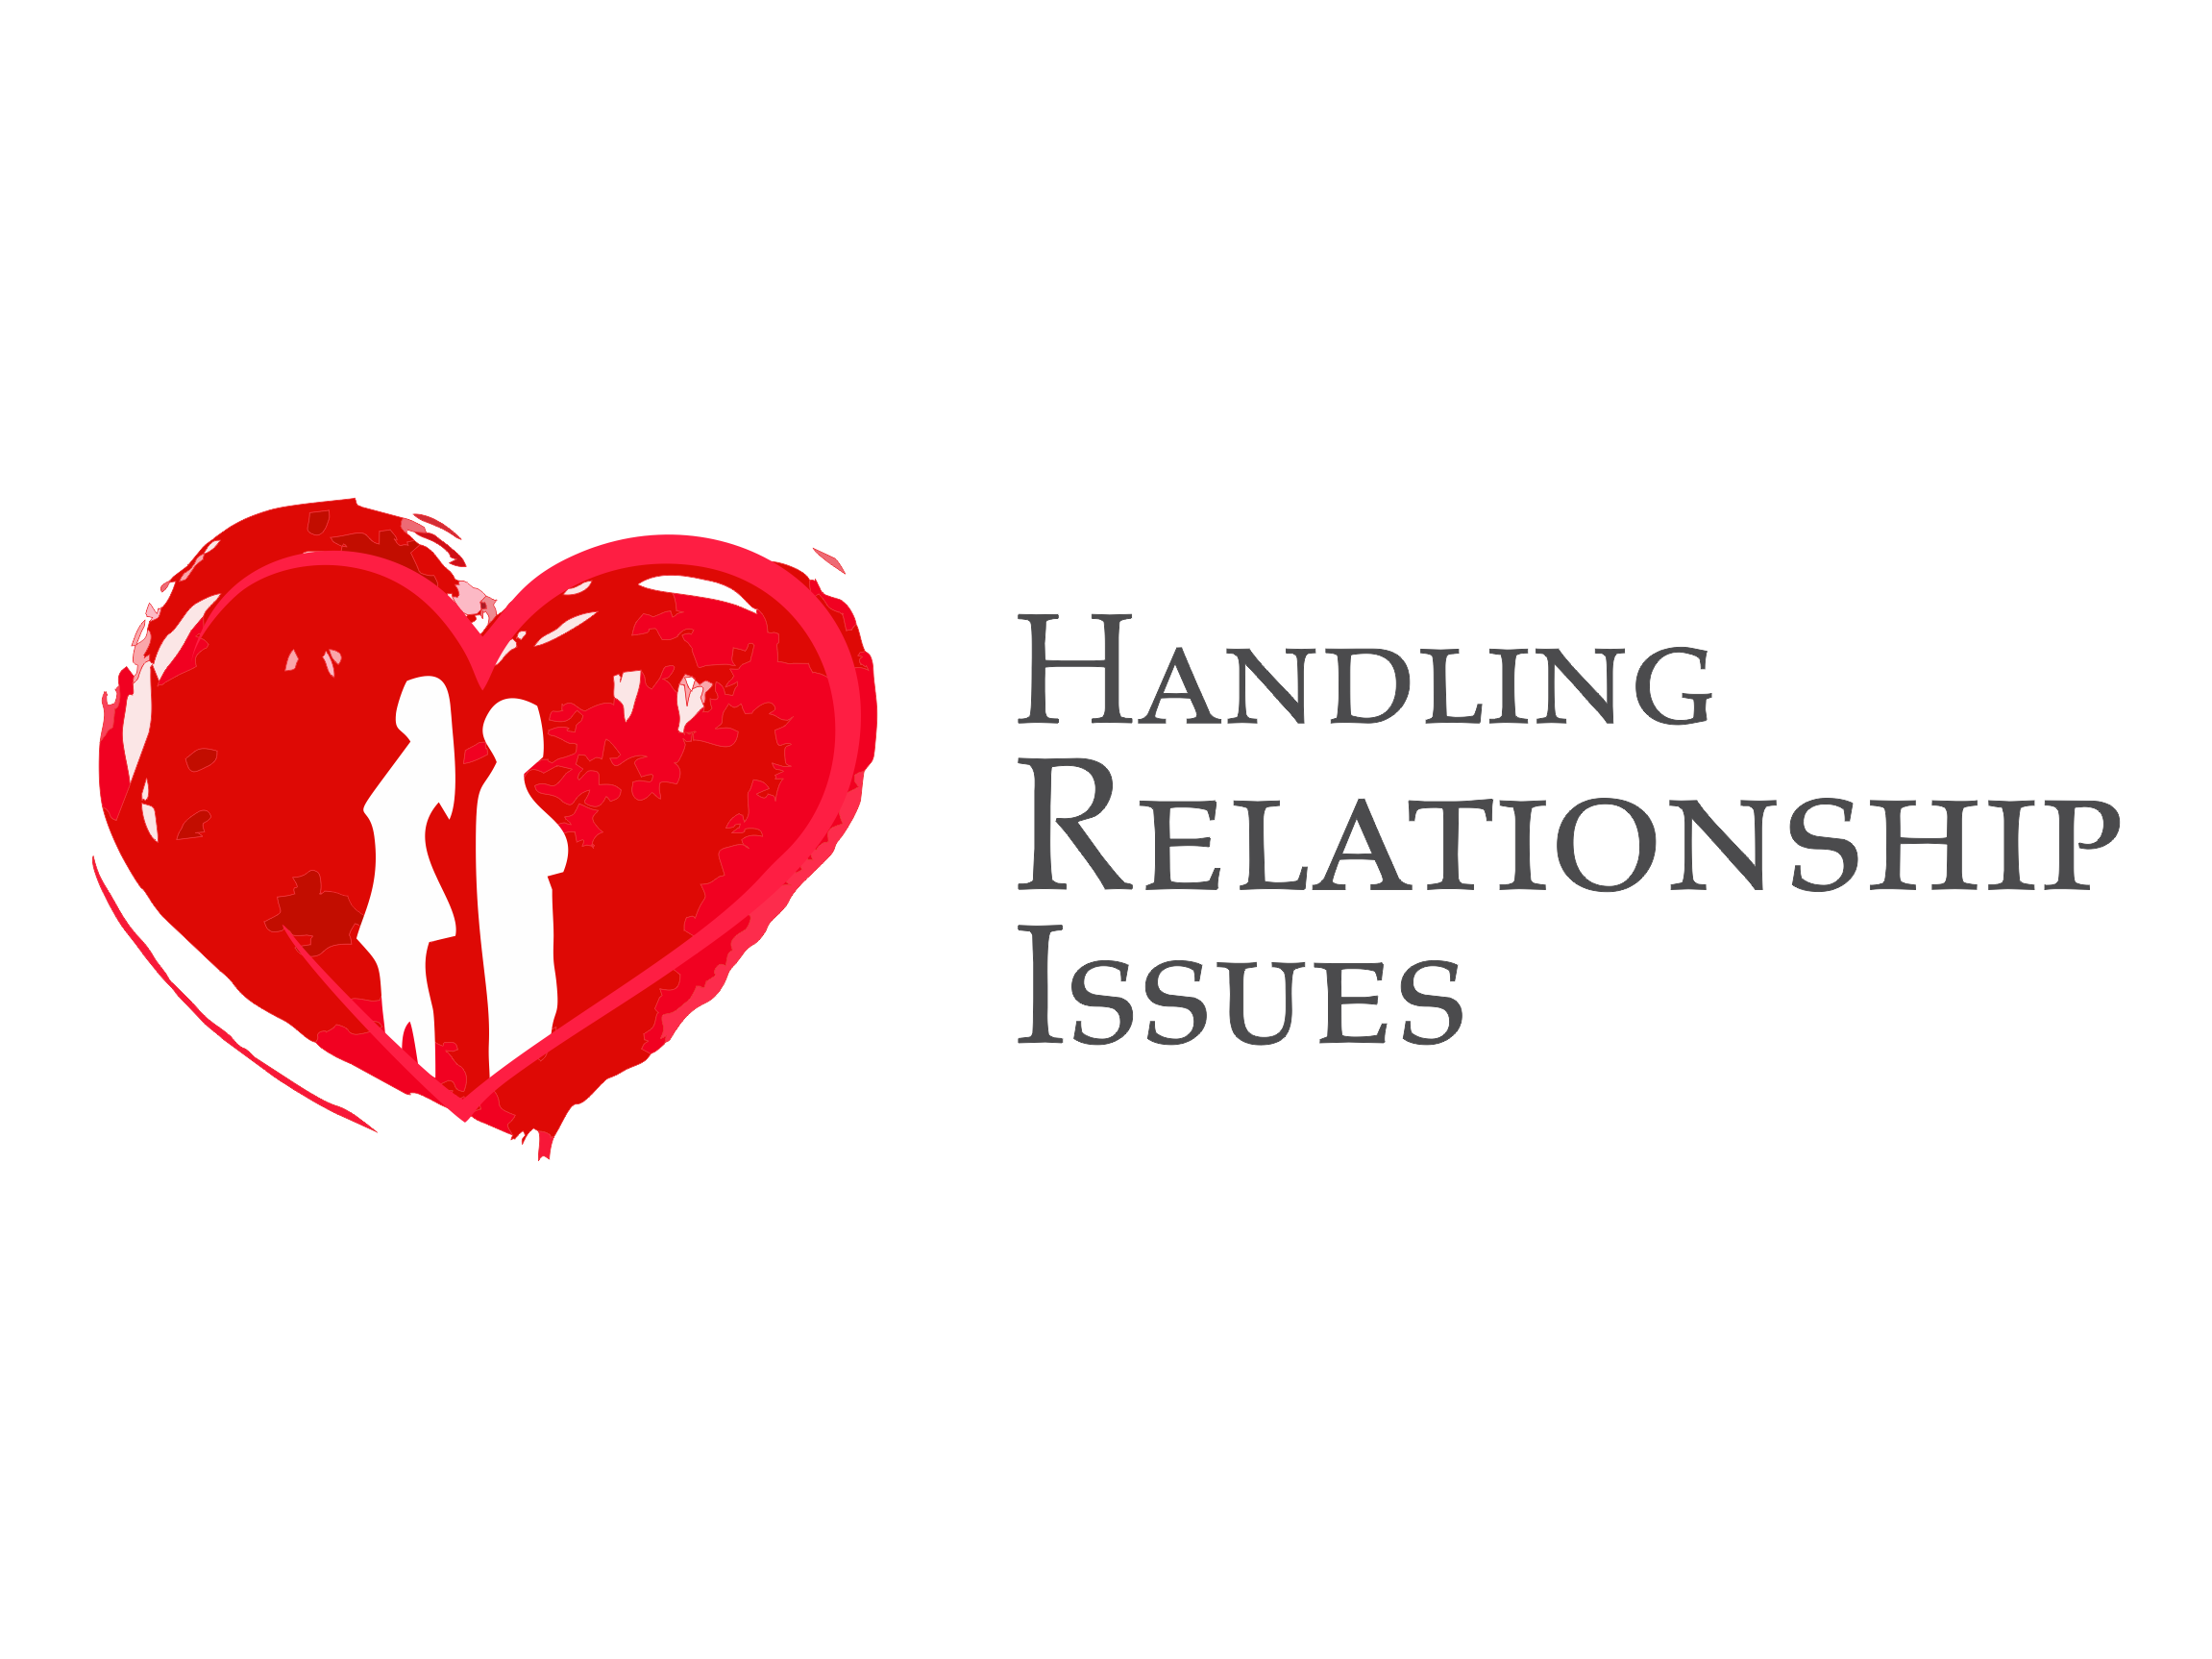 Handling Relationship Issues